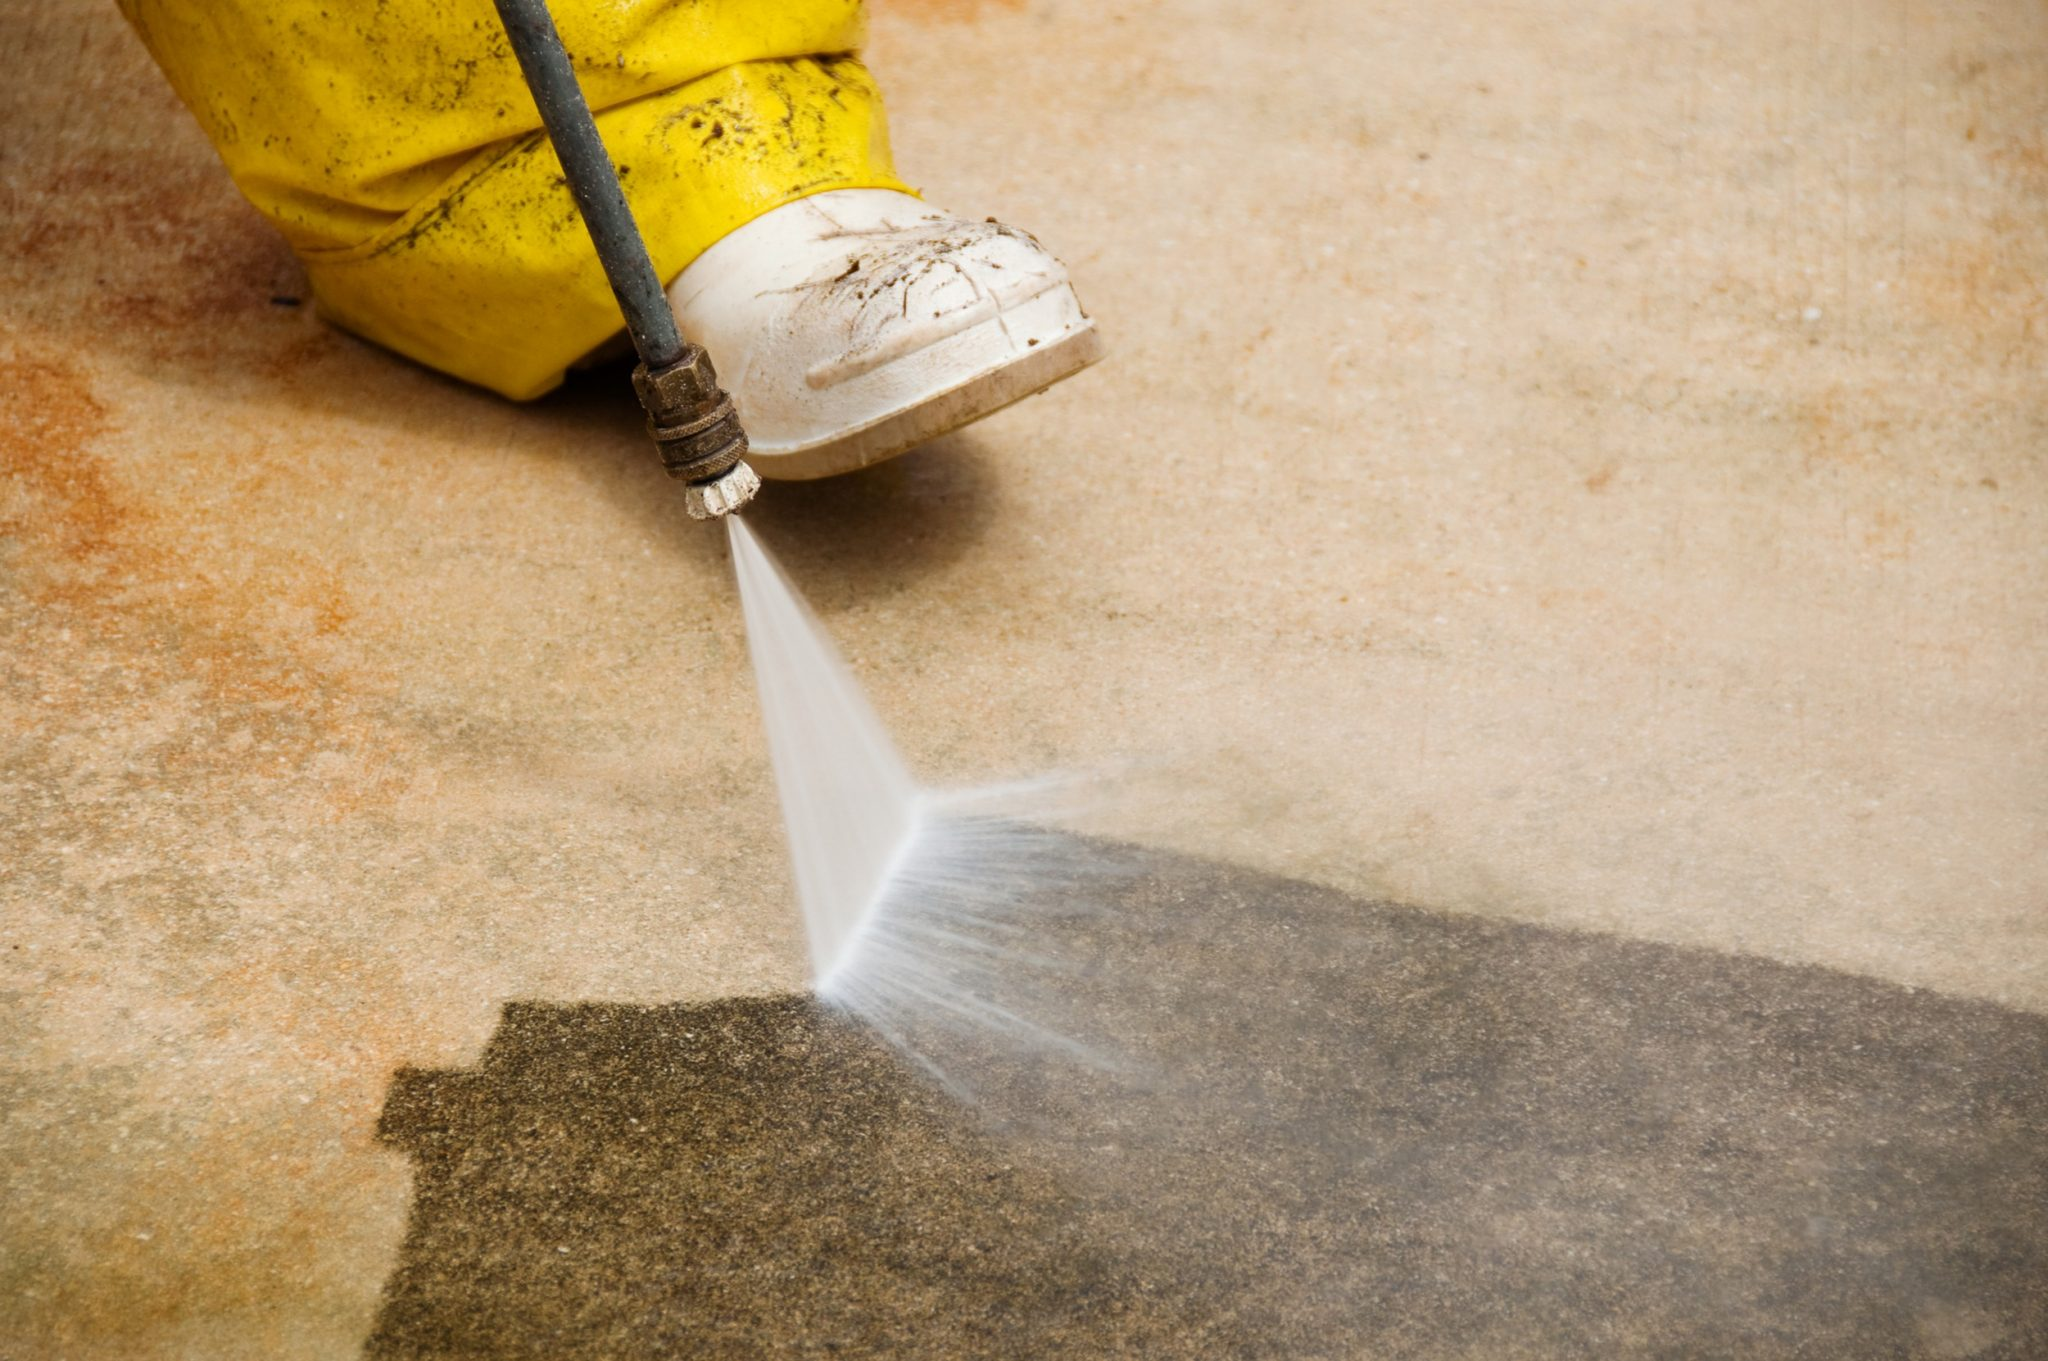 How to Perfectly Pressure Wash Your Paved Driveway